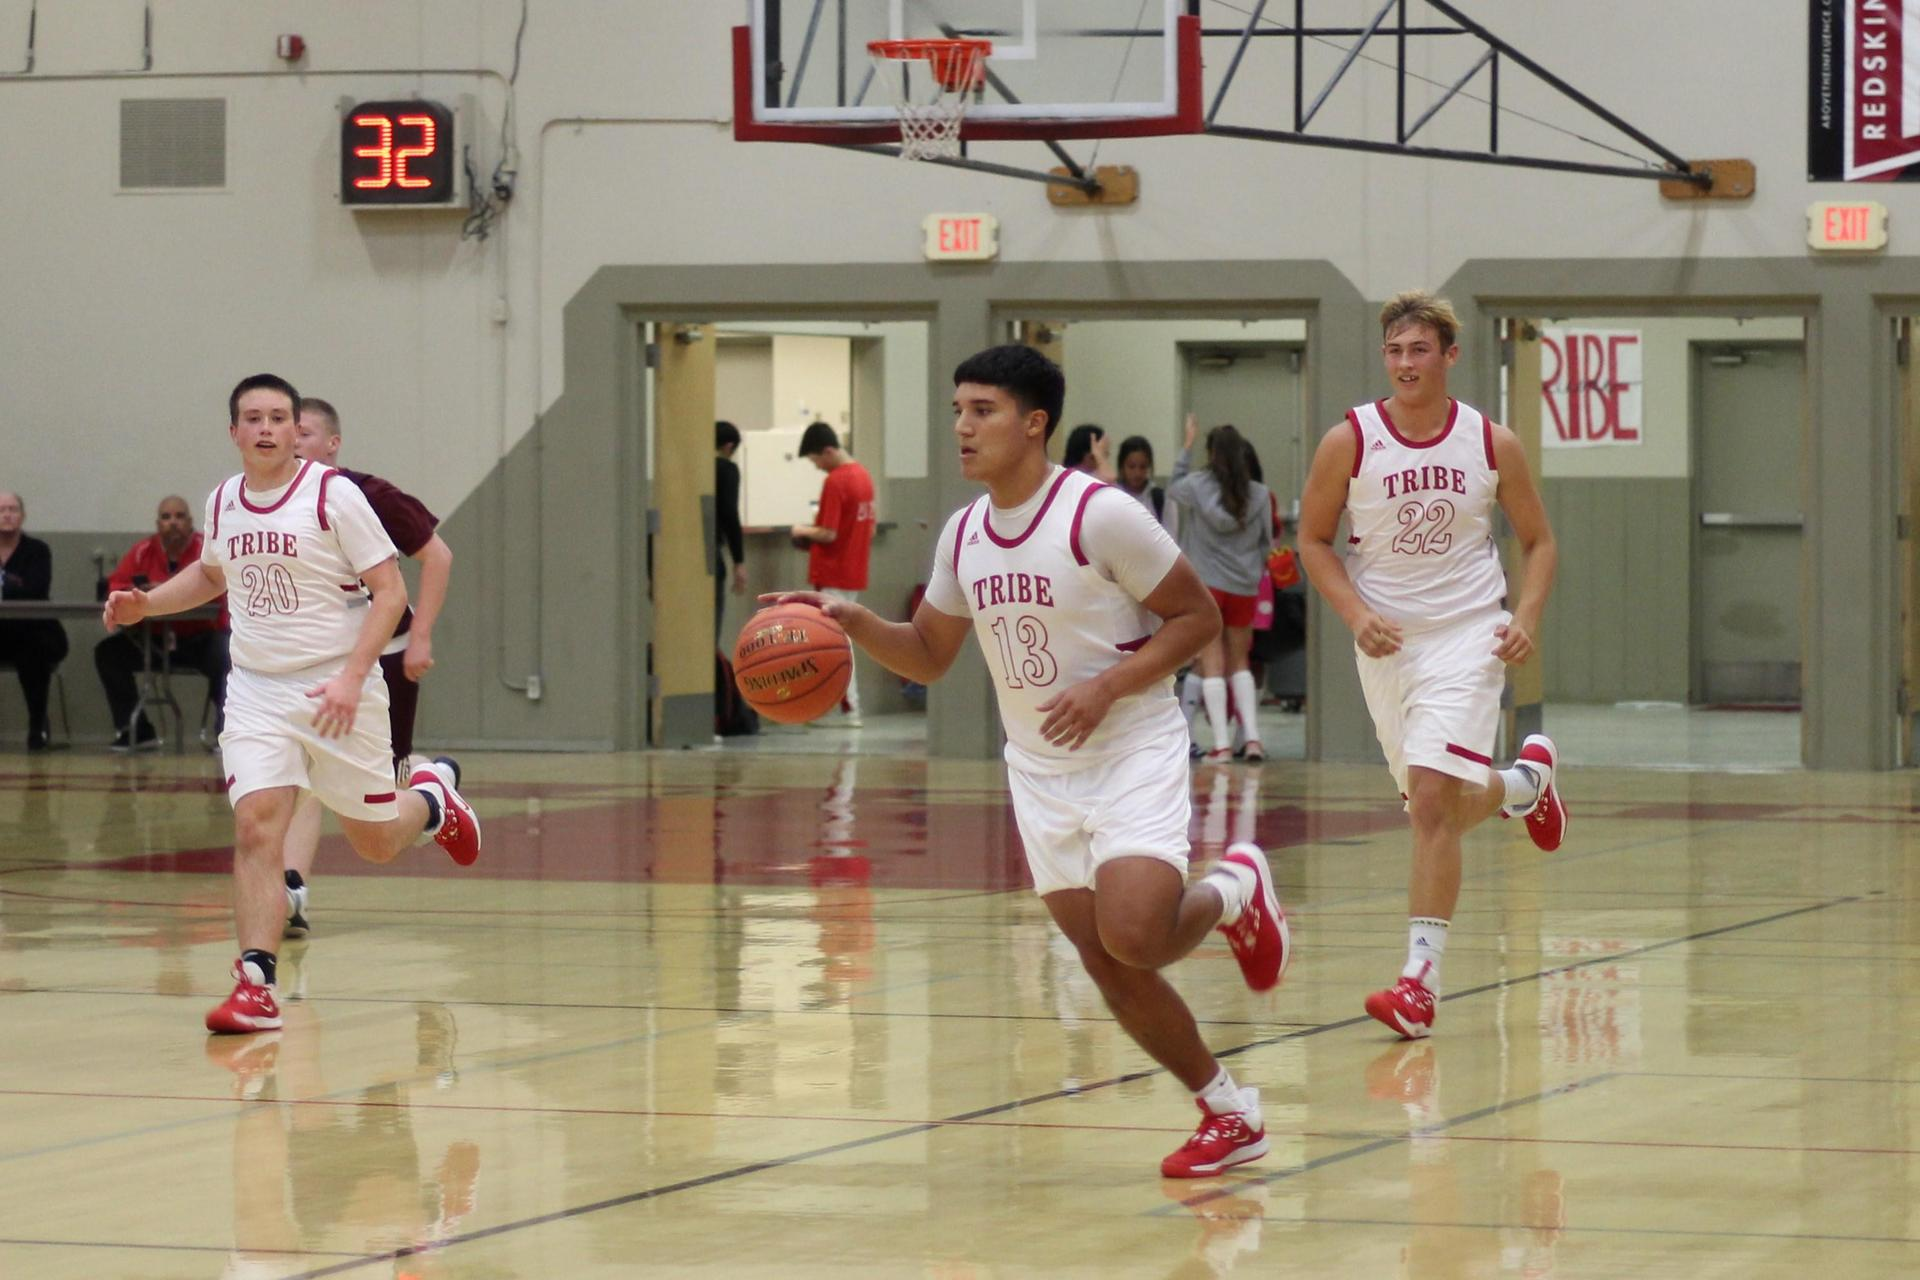 varsity boys playing basketball against Kings Christian